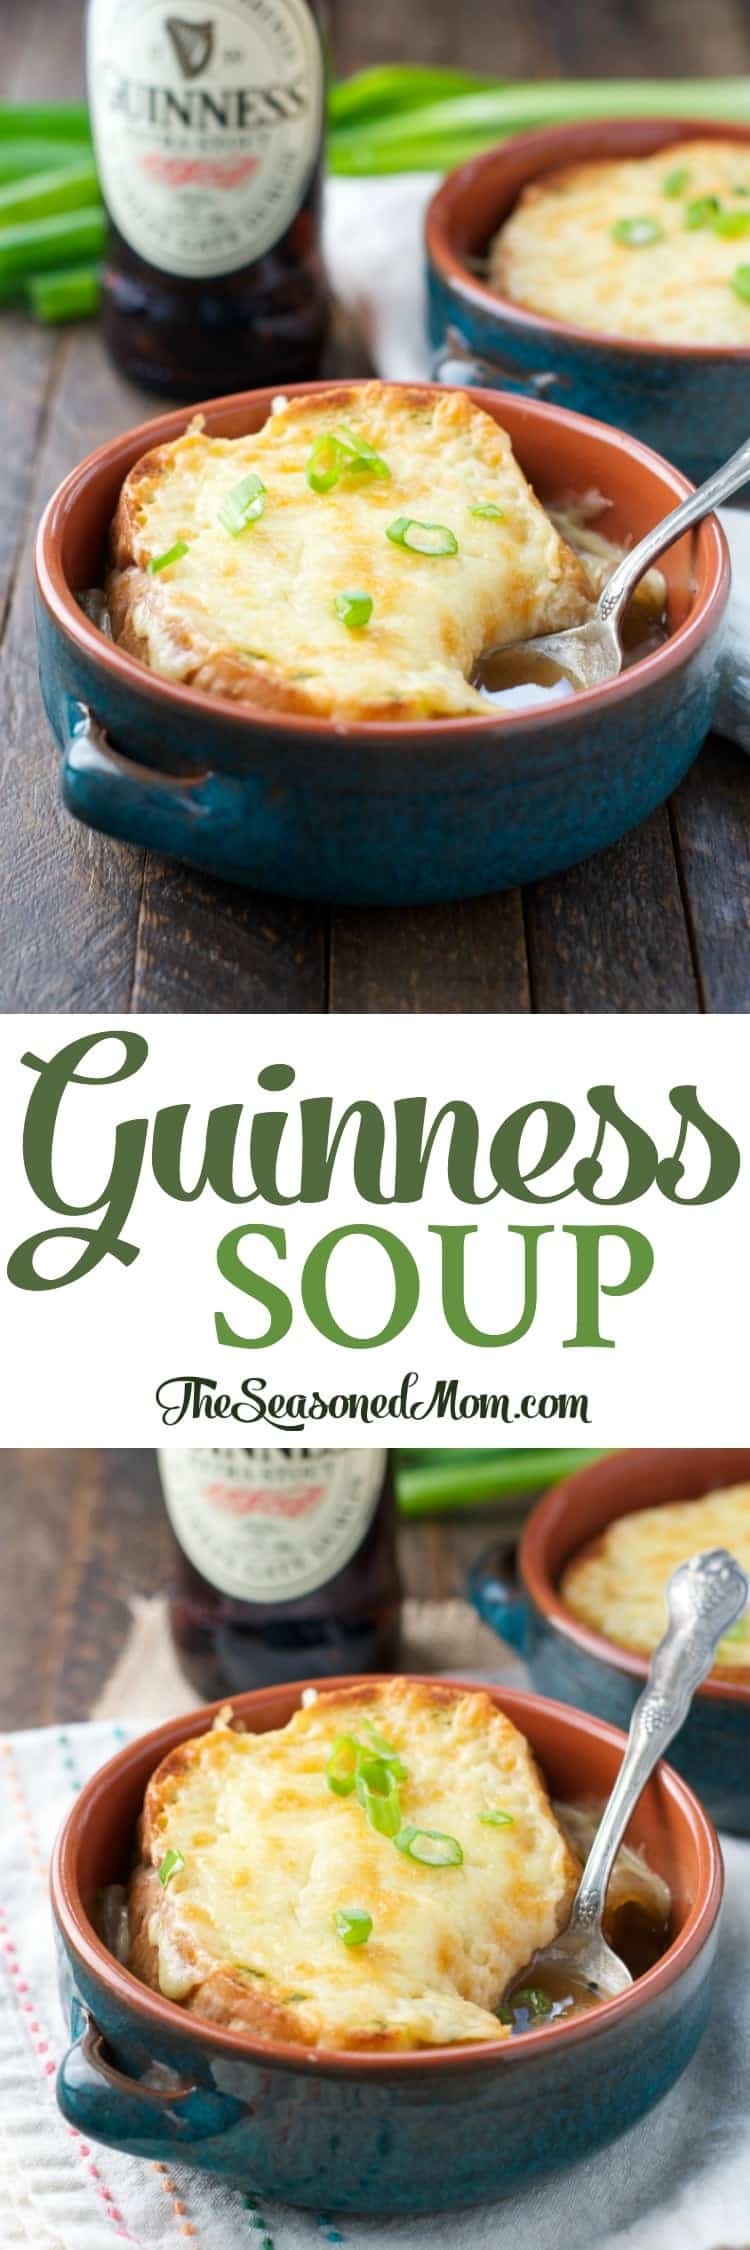 A Quick and Easy Guinness Soup is perfect for St. Patrick's Day! Soup Recipes | St. Patrick's Day | Irish Food | Irish Recipes | Dinner Ideas | Easy Dinner Recipes